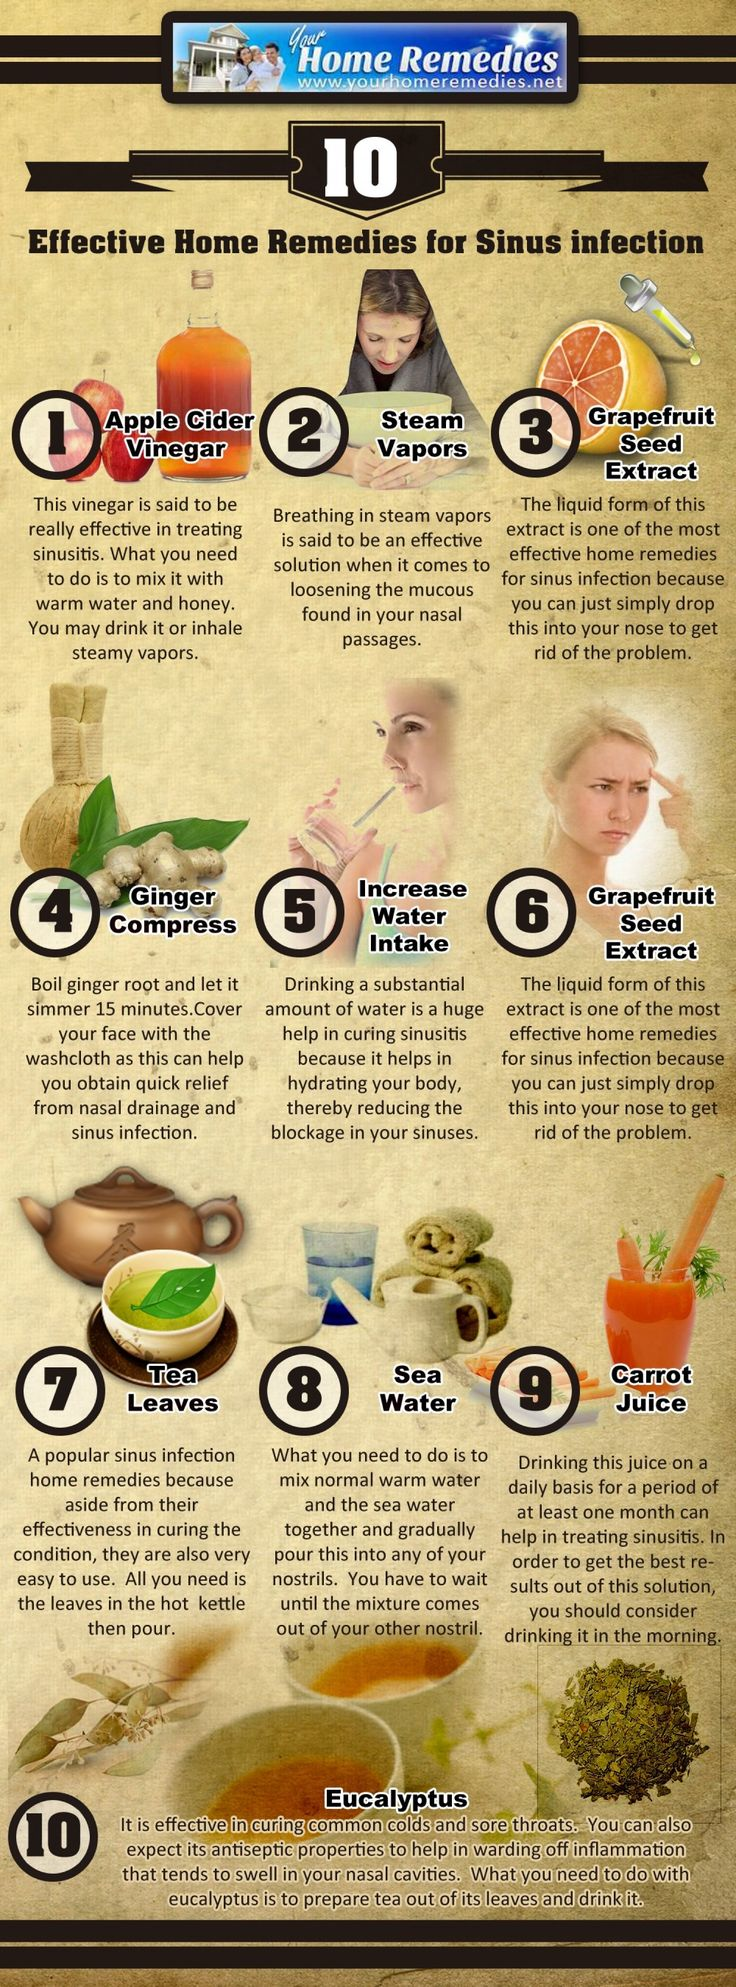 5 tips to improve your concentration photo 3